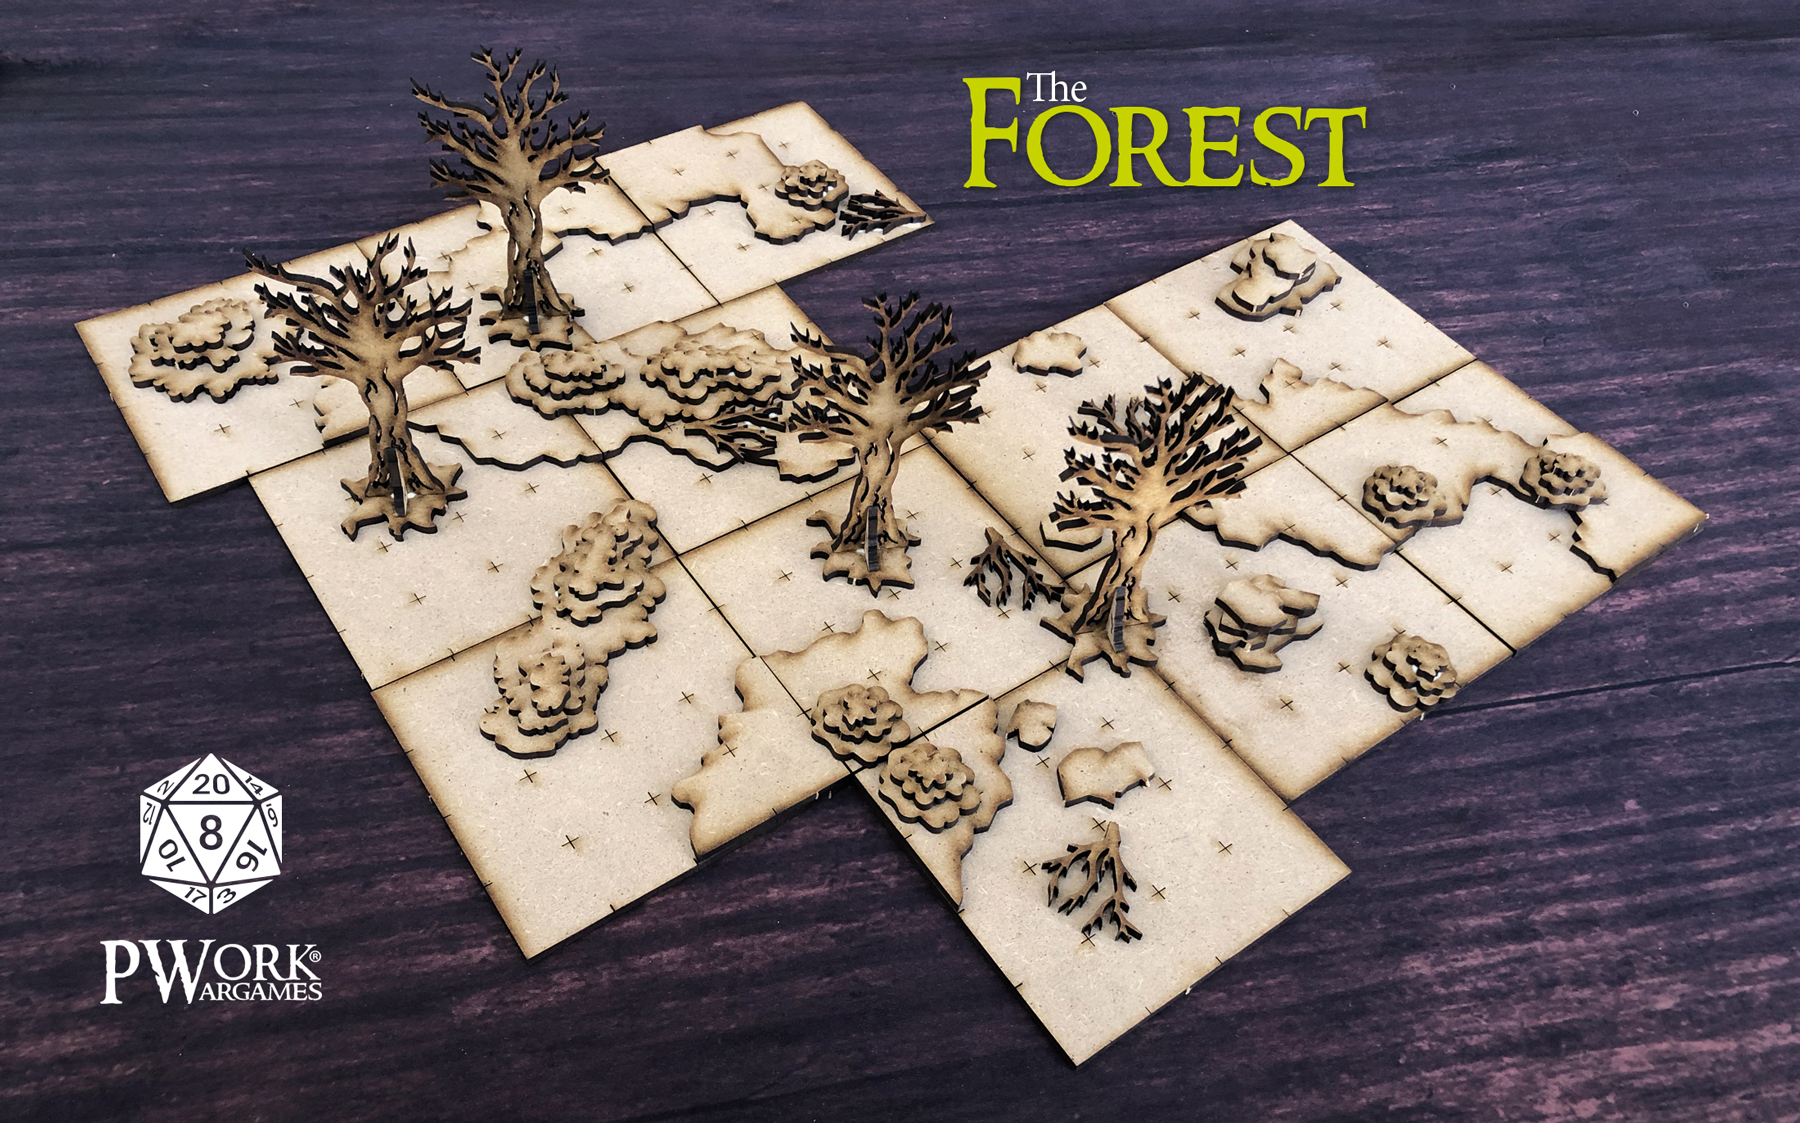 The Forest - PWork Wargames